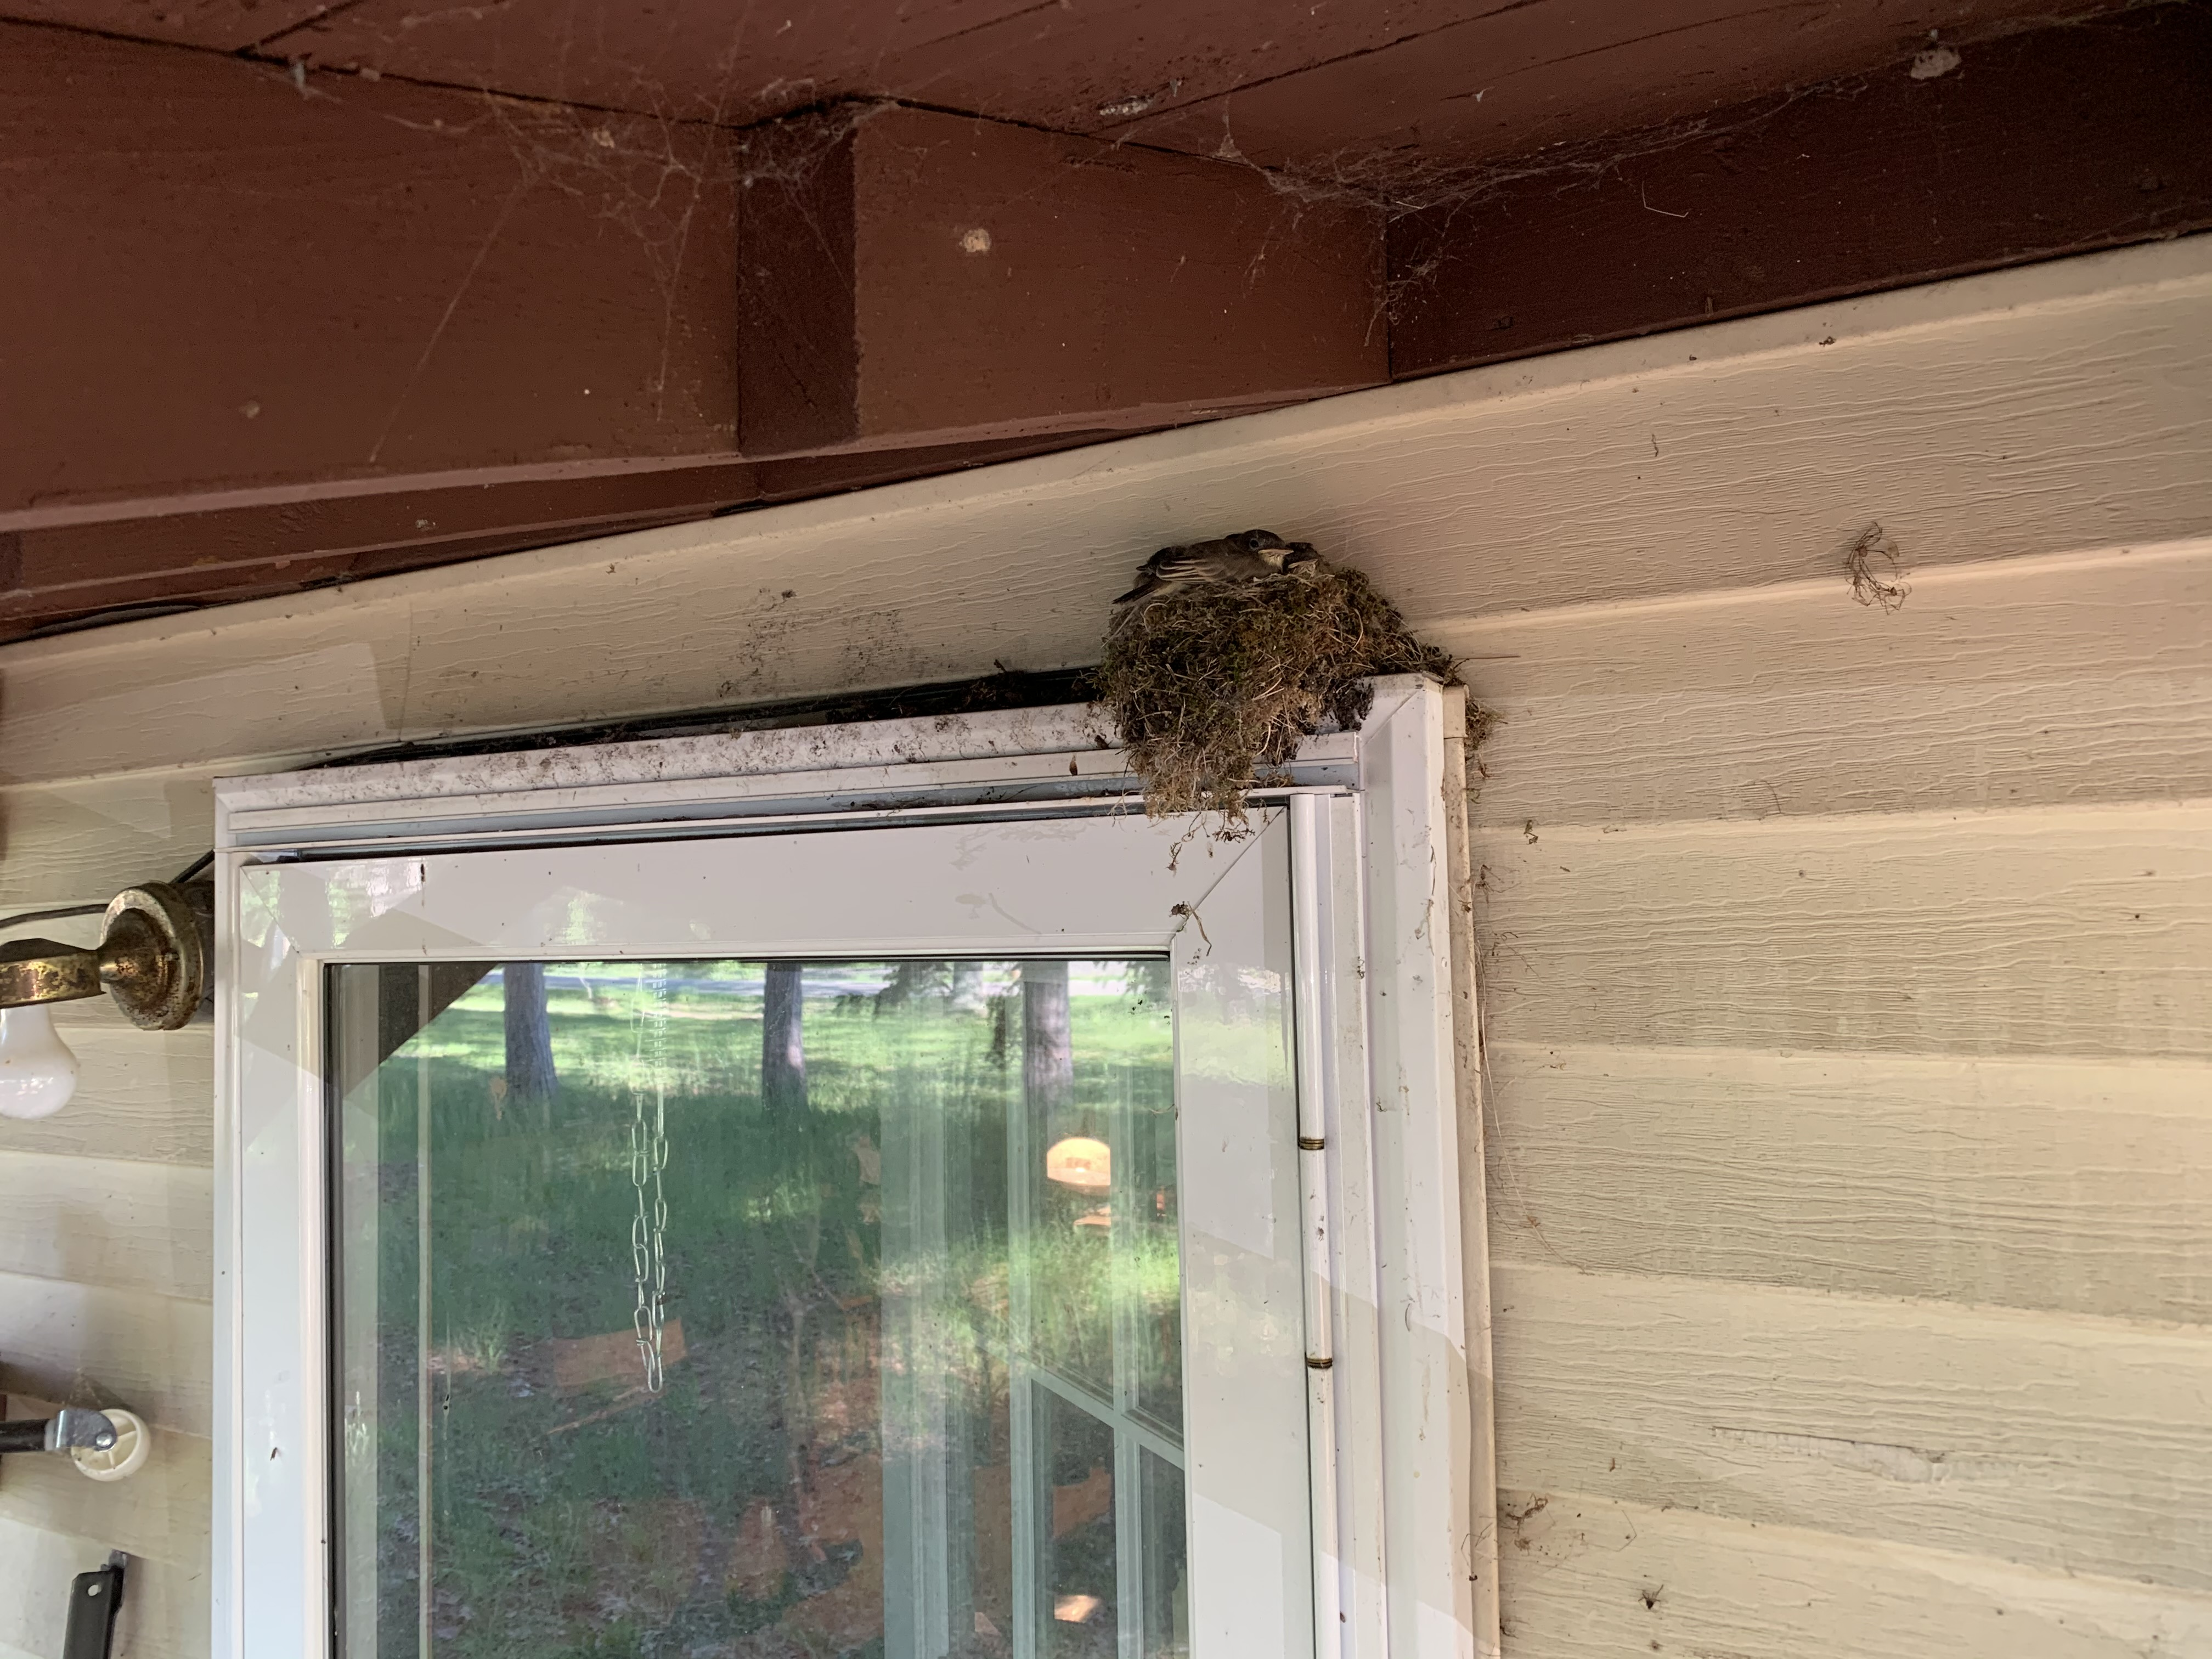 Nest with 5 (at least) baby eastern phoebes right above my front door...that fledged the day after the boys left!